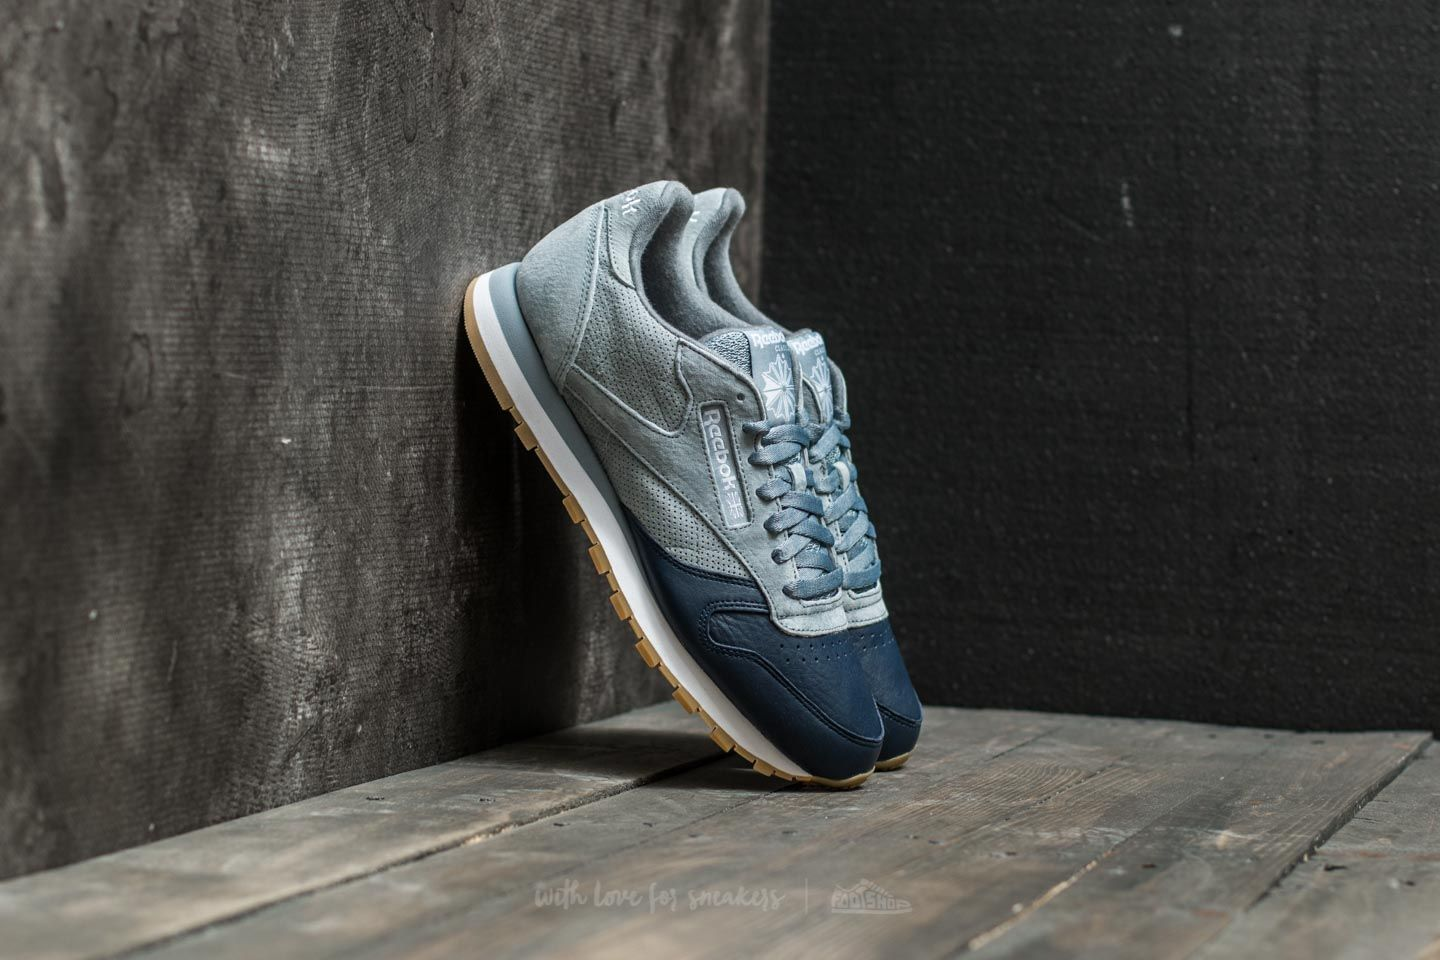 9619a23f186 Reebok Classic Leather Lazy Sunday Meteor Grey  Collegiate Navy ...